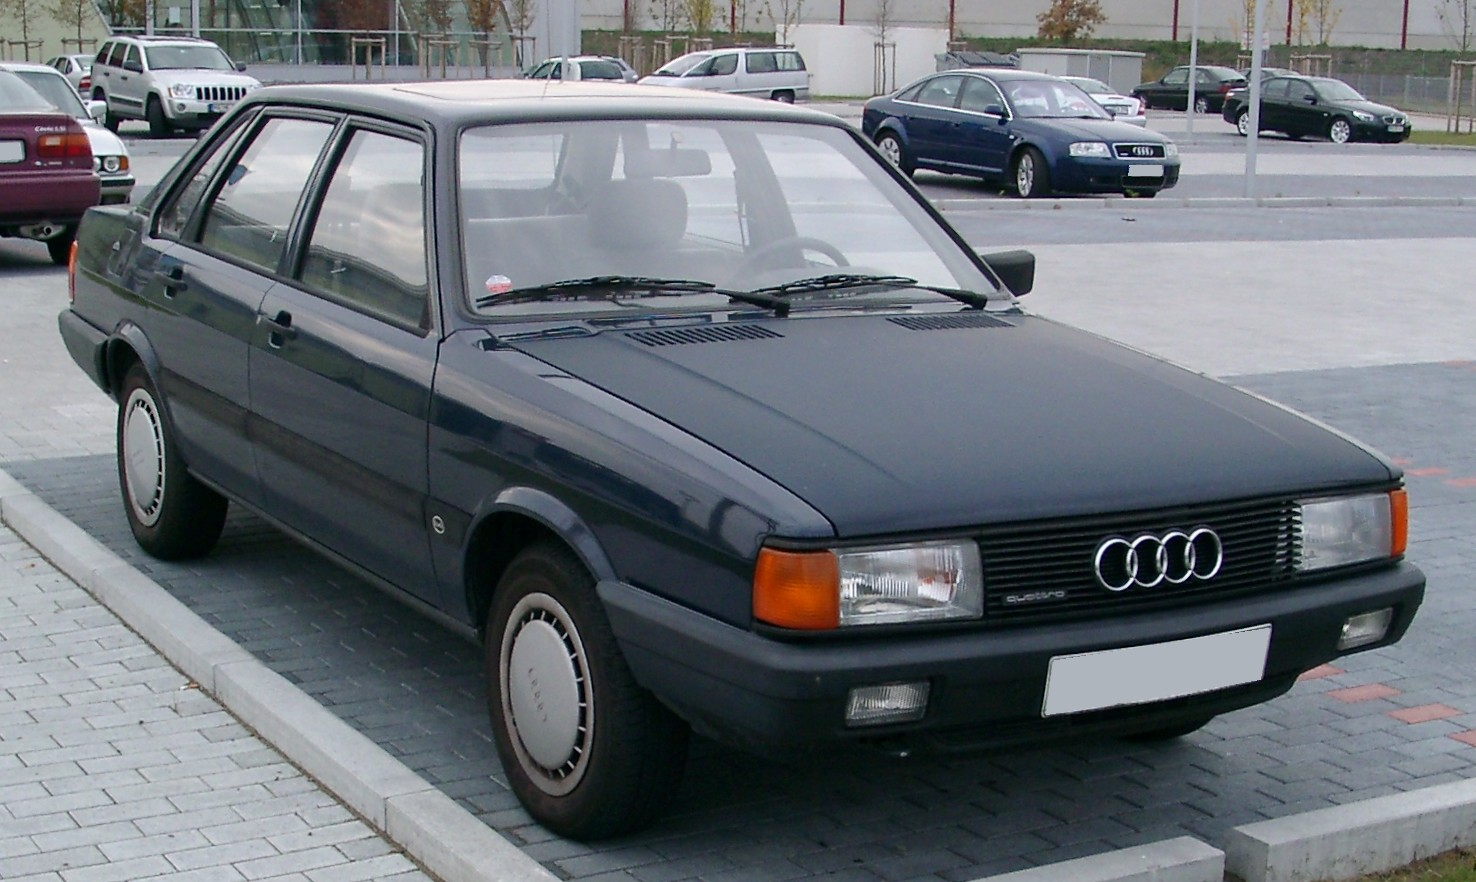 http://dic.academic.ru/pictures/wiki/files/65/Audi_80_B2_front_20071023.jpg